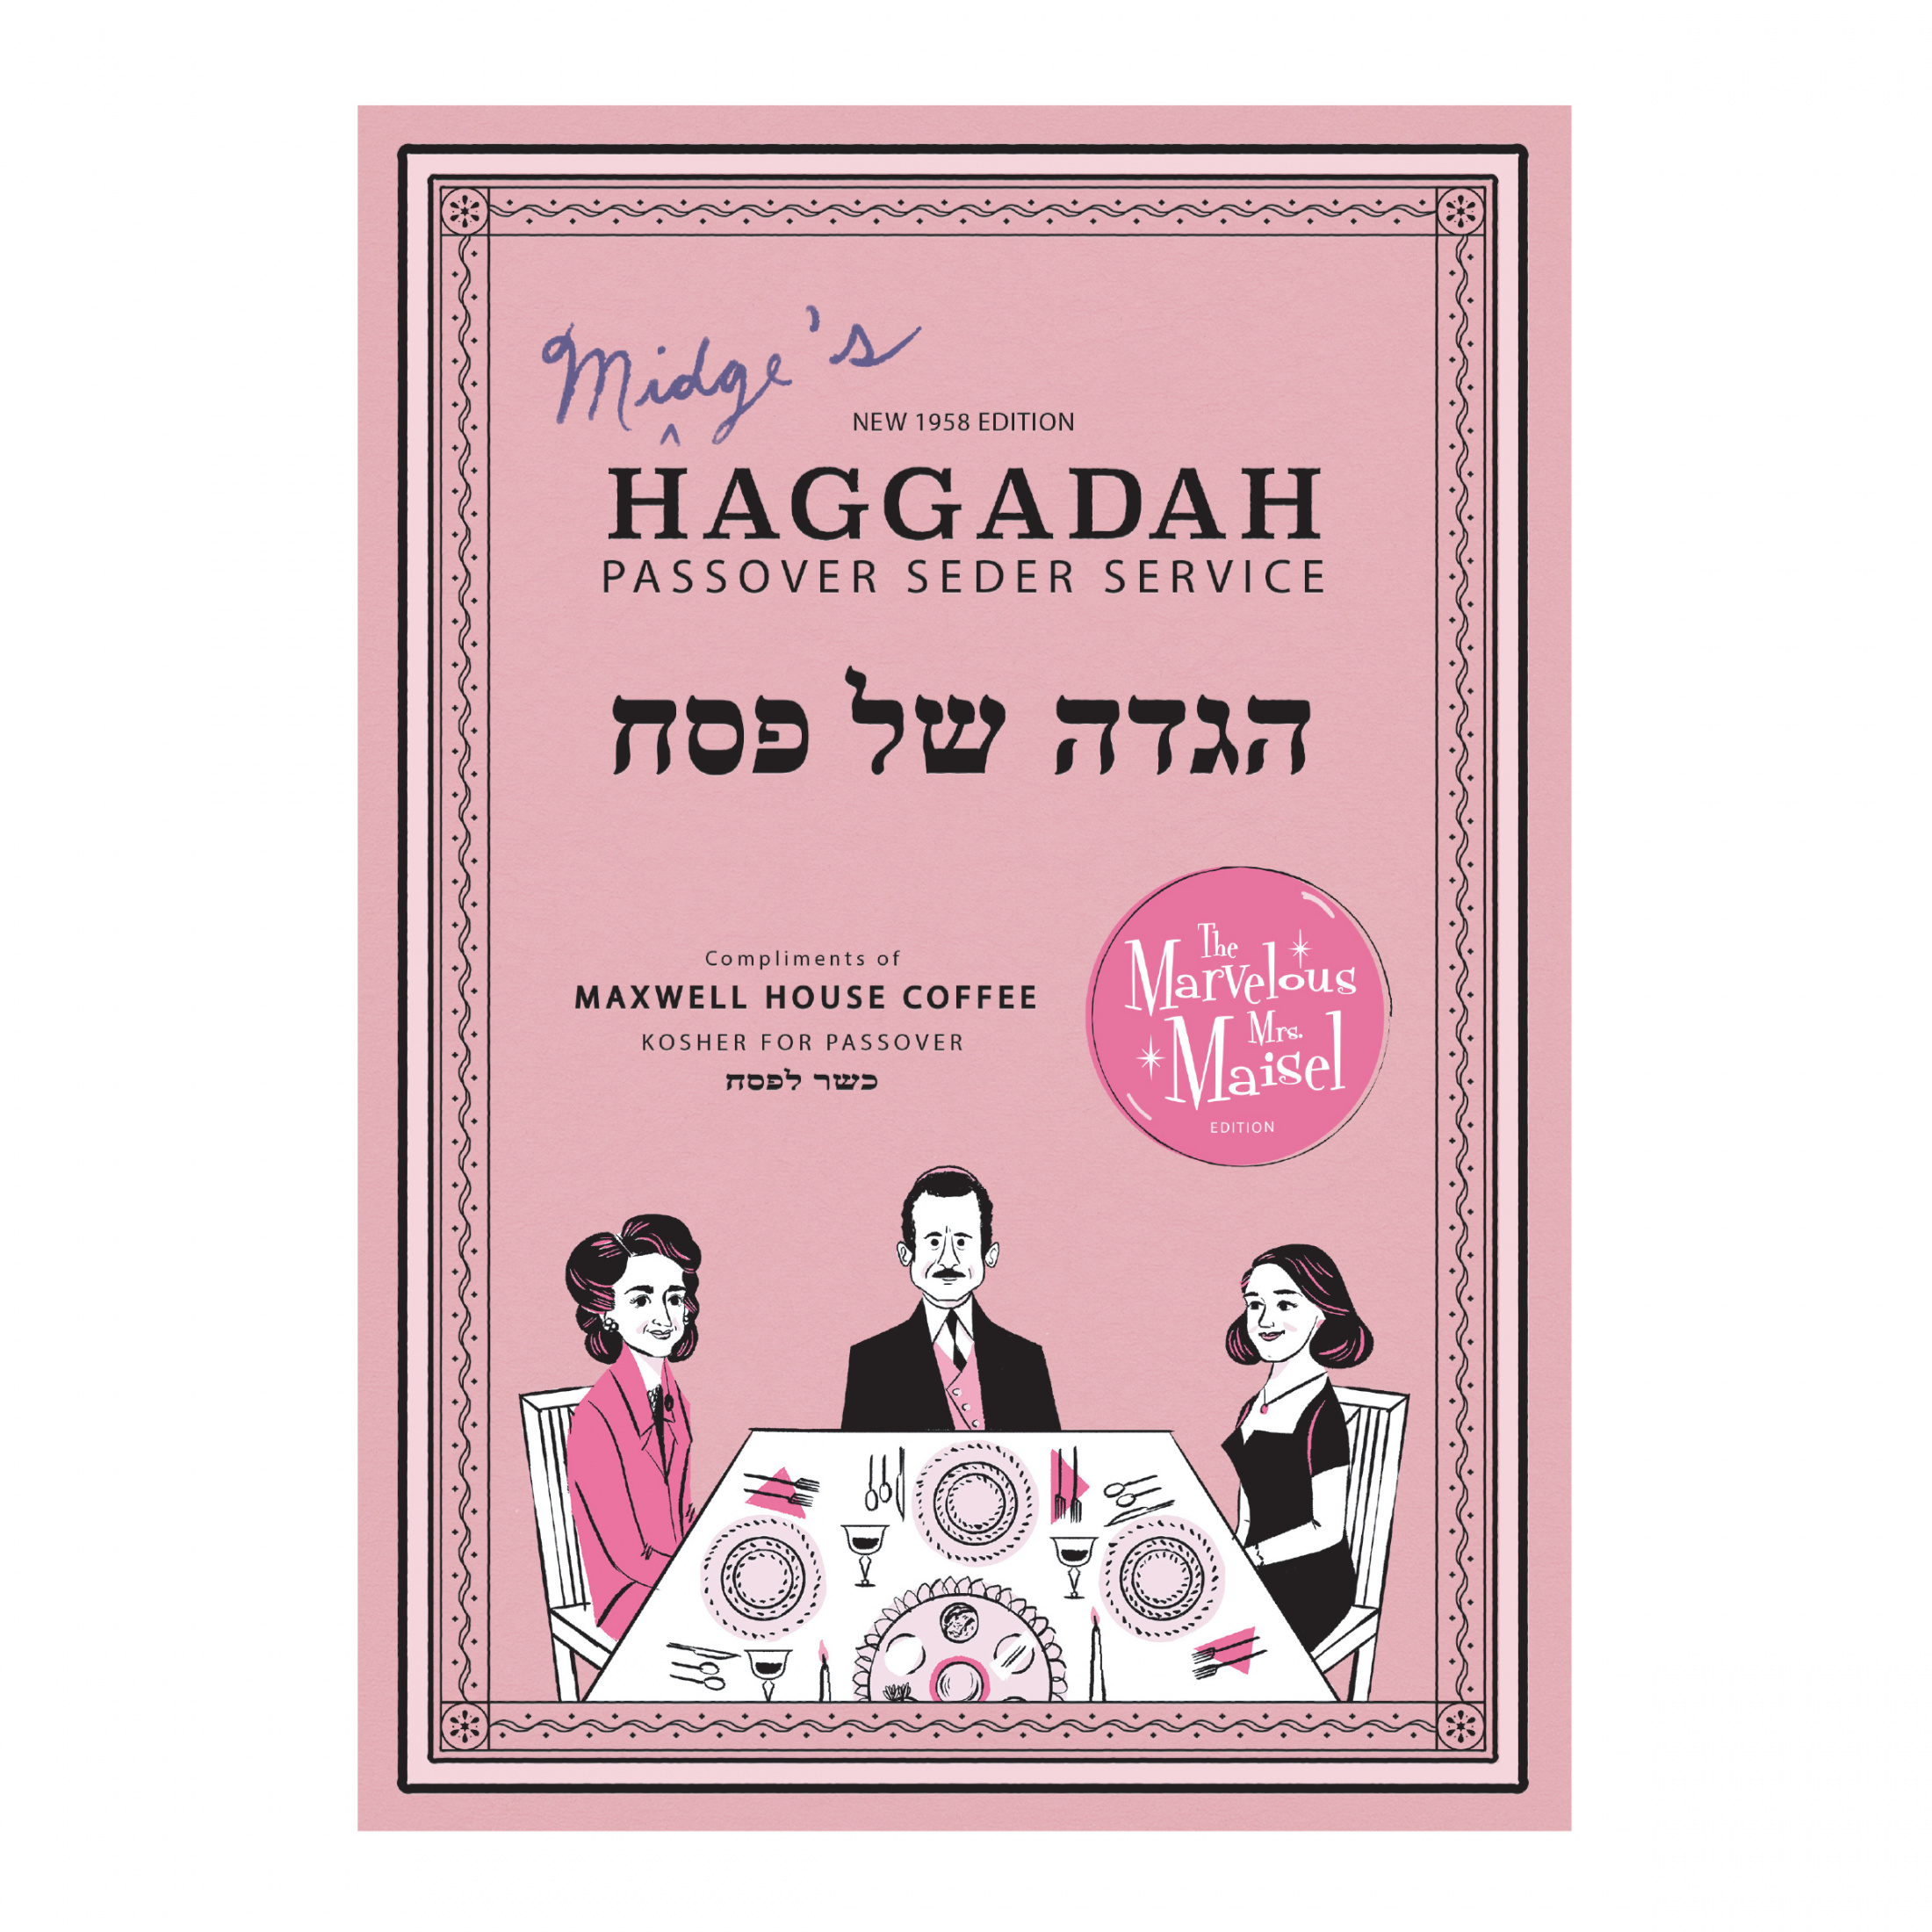 Thumbnail for Maxwell House Haggadah: The Marvelous Mrs. Maisel Edition